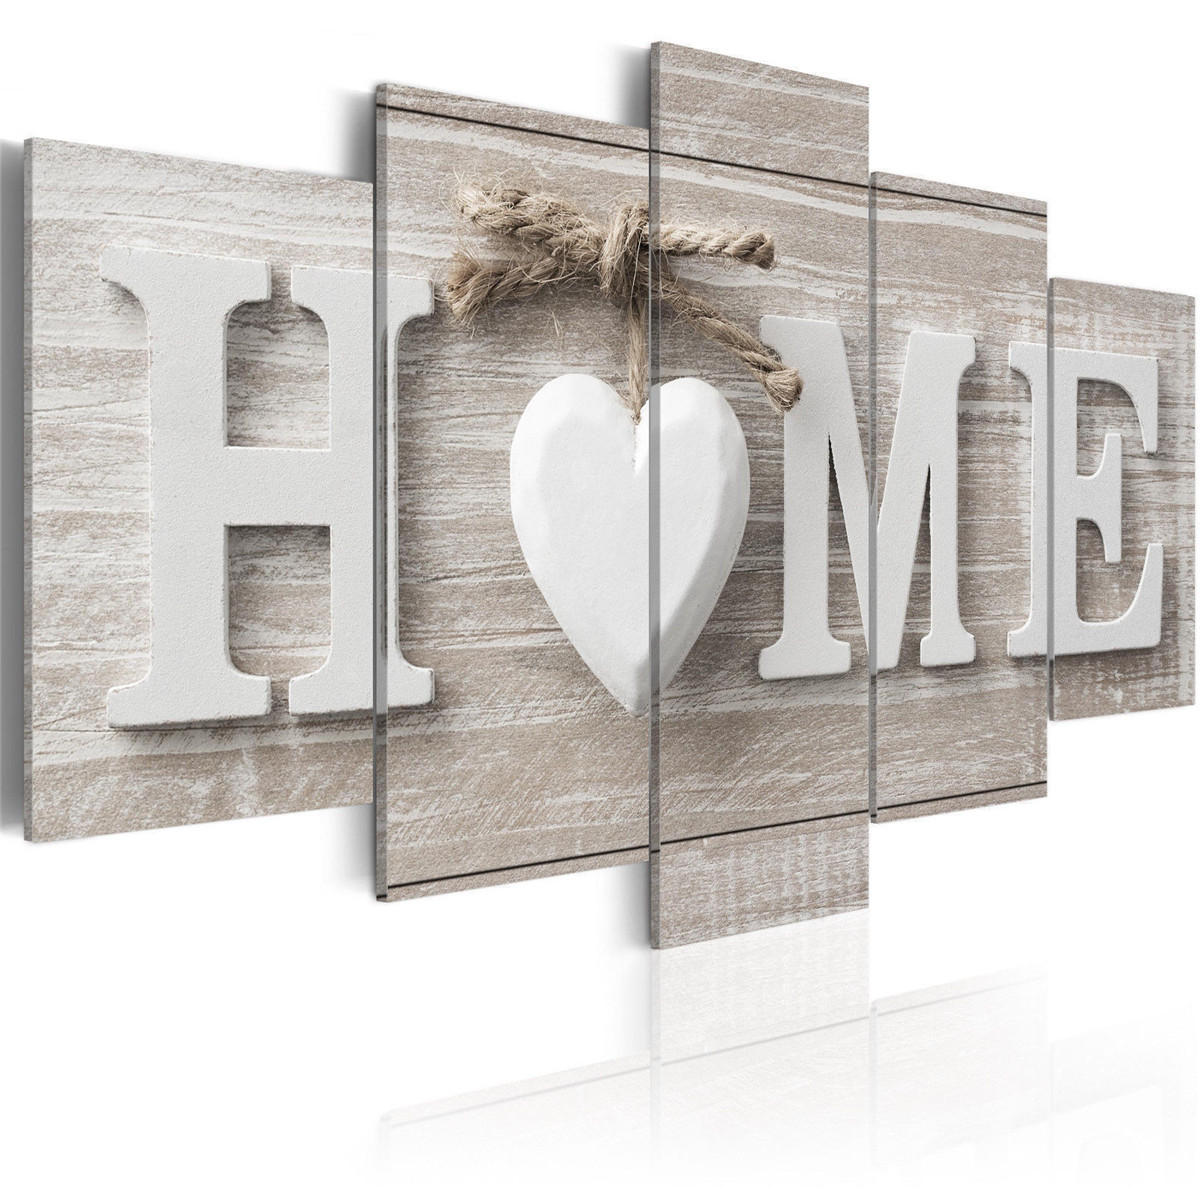 5 Panels Love HOME Wall Art Print Pictures Canvas Wall Prints Unframed Paper